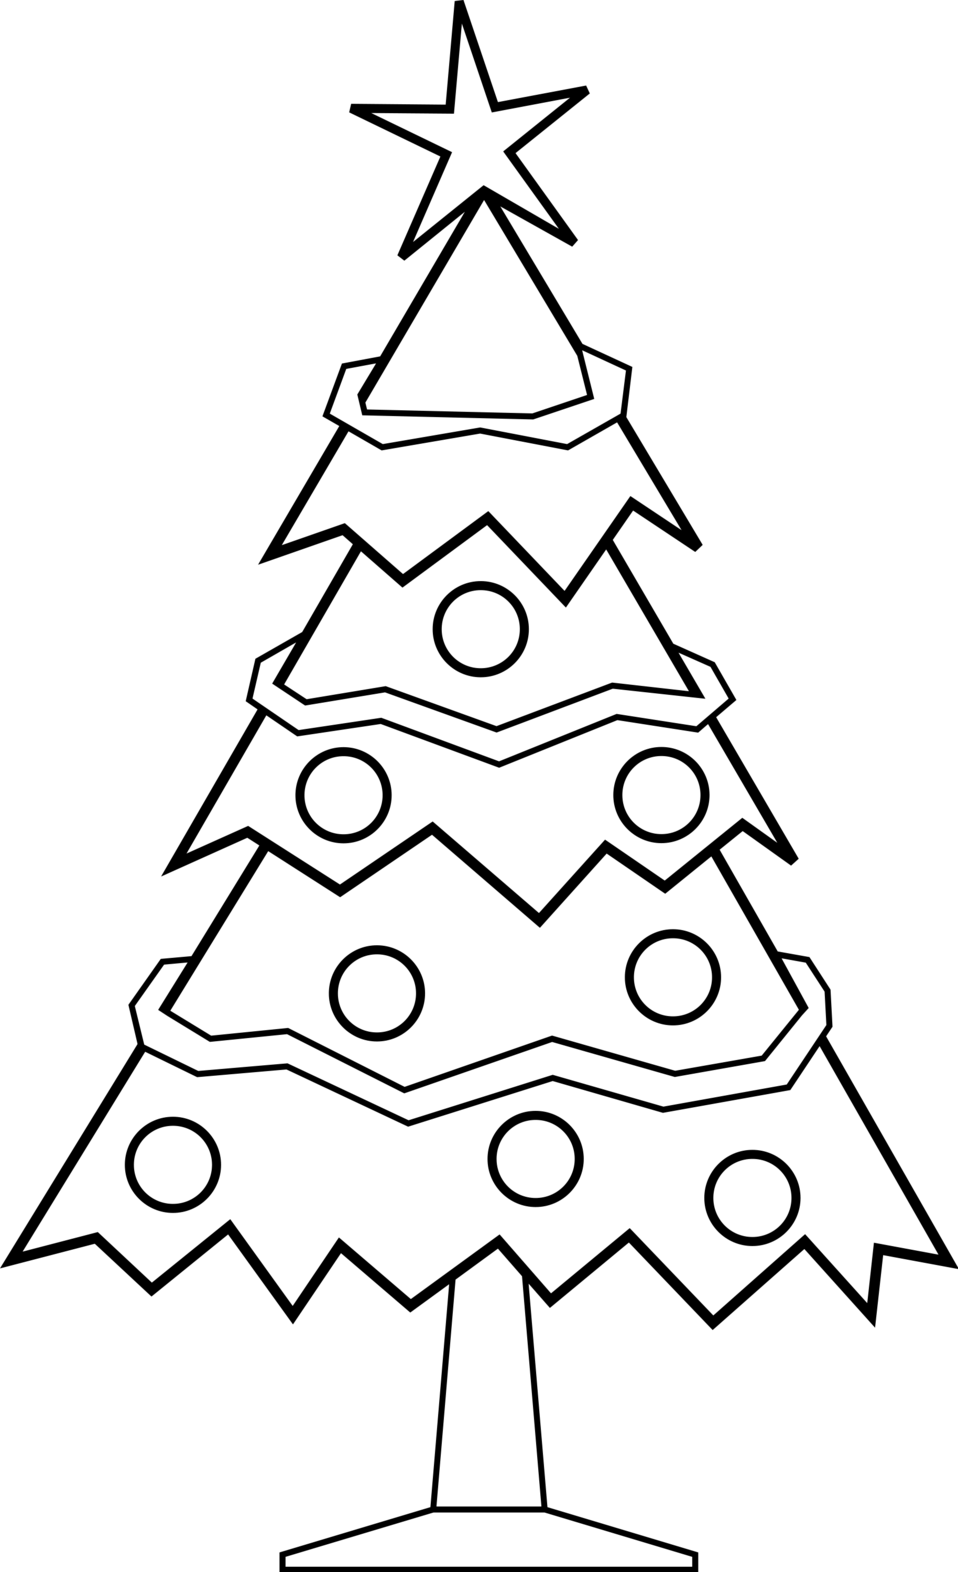 Christmas tree clipart black white png black and white download Christmas Drawing Black And White at GetDrawings.com | Free for ... png black and white download